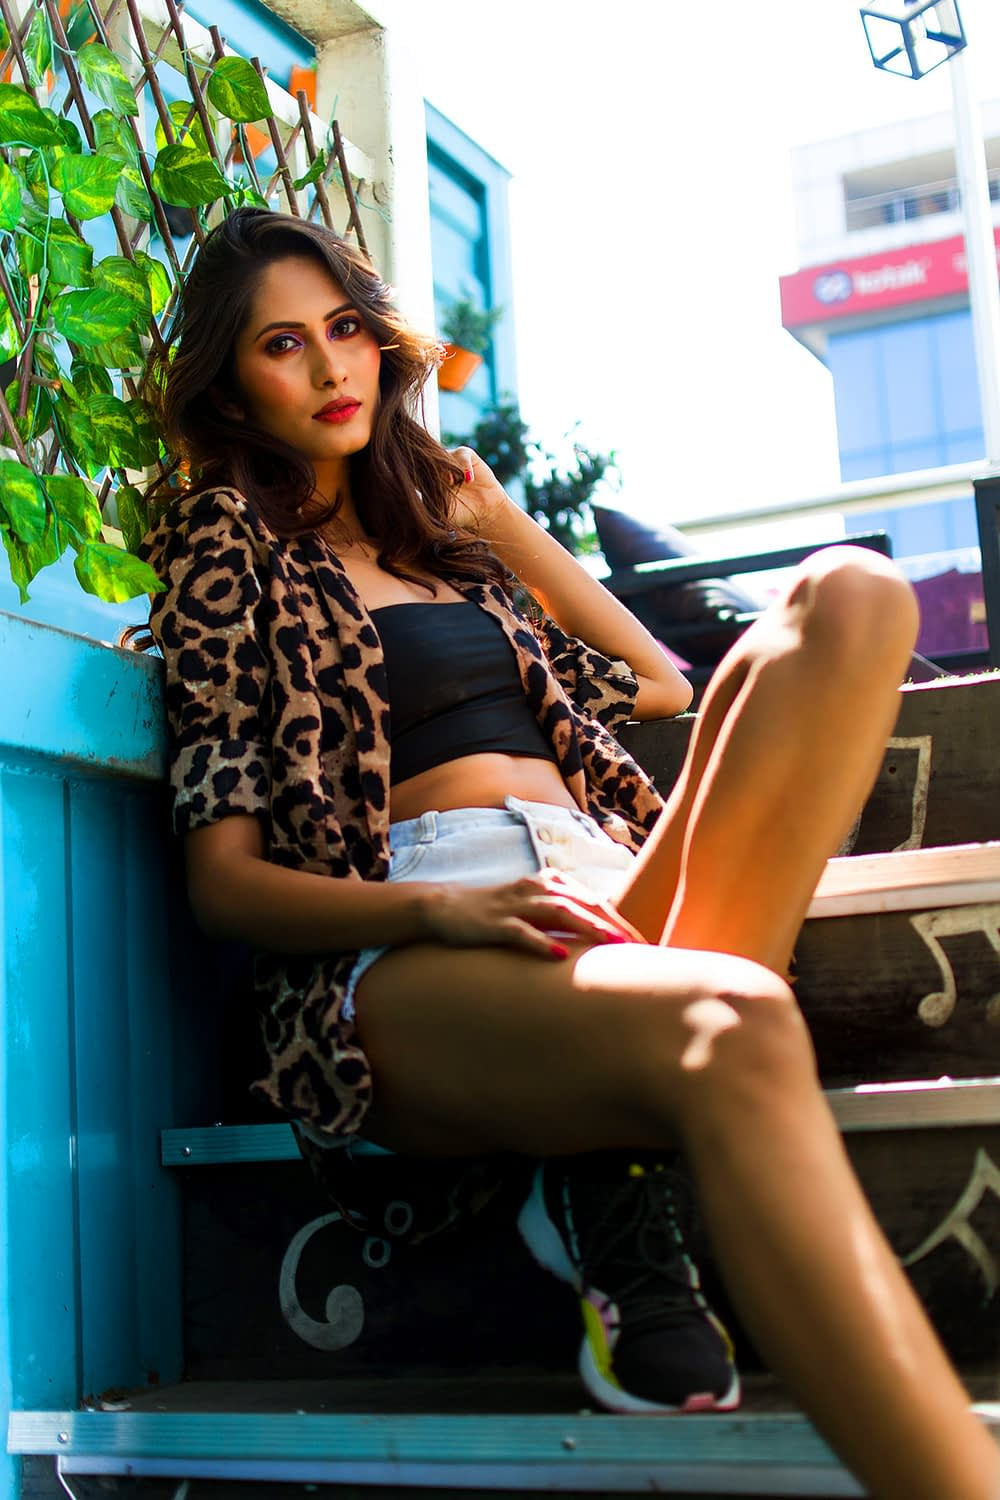 A young woman wearing leopard print and sitting on stairs.